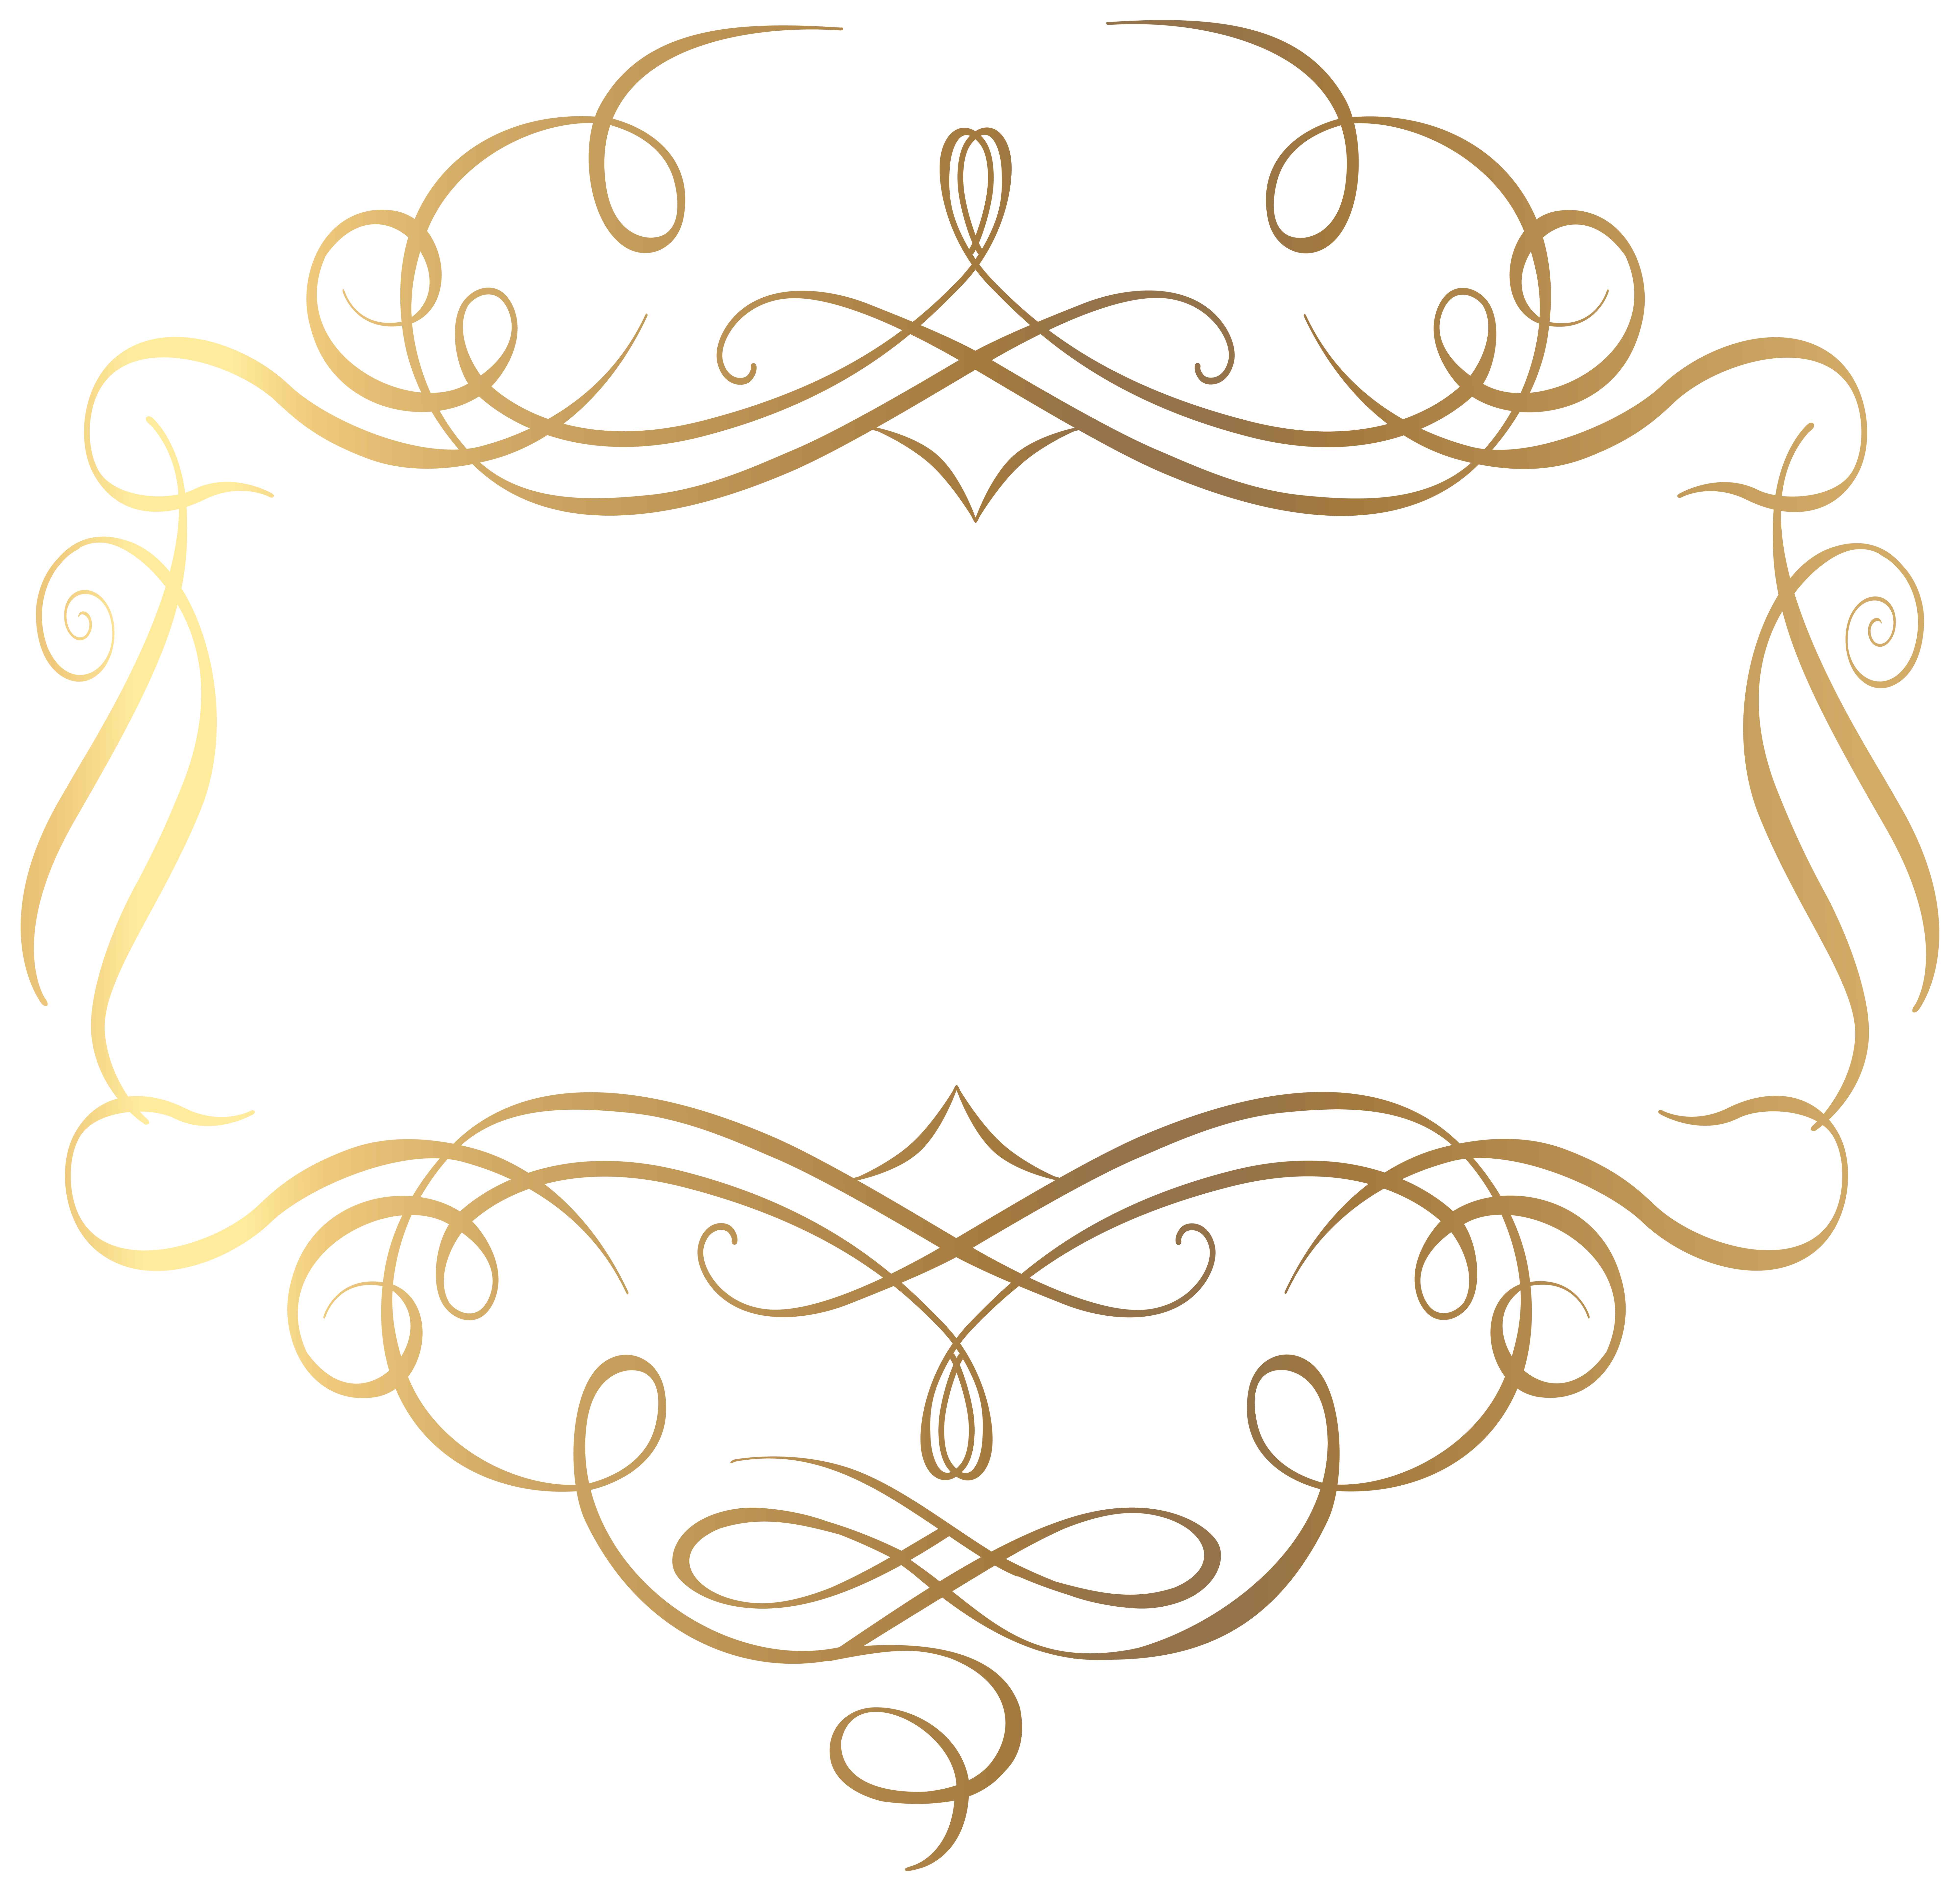 Decorative clipart decorative element. Gold decoration png transparent